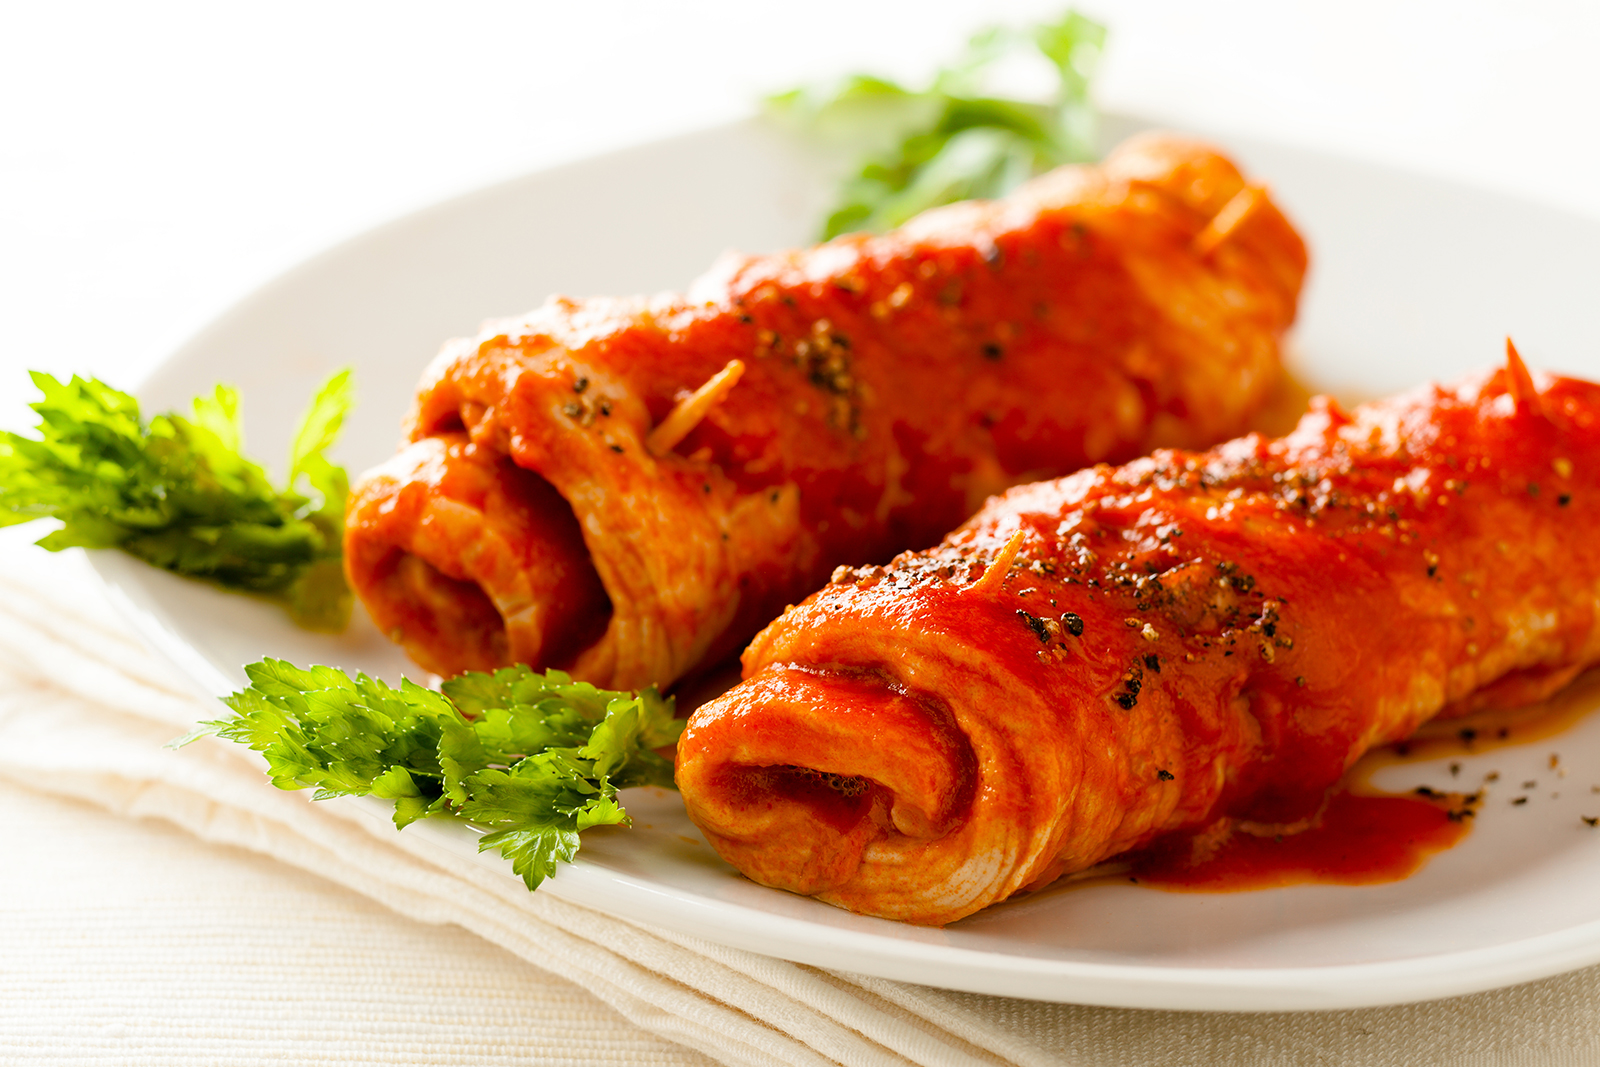 upclose shot of braciole